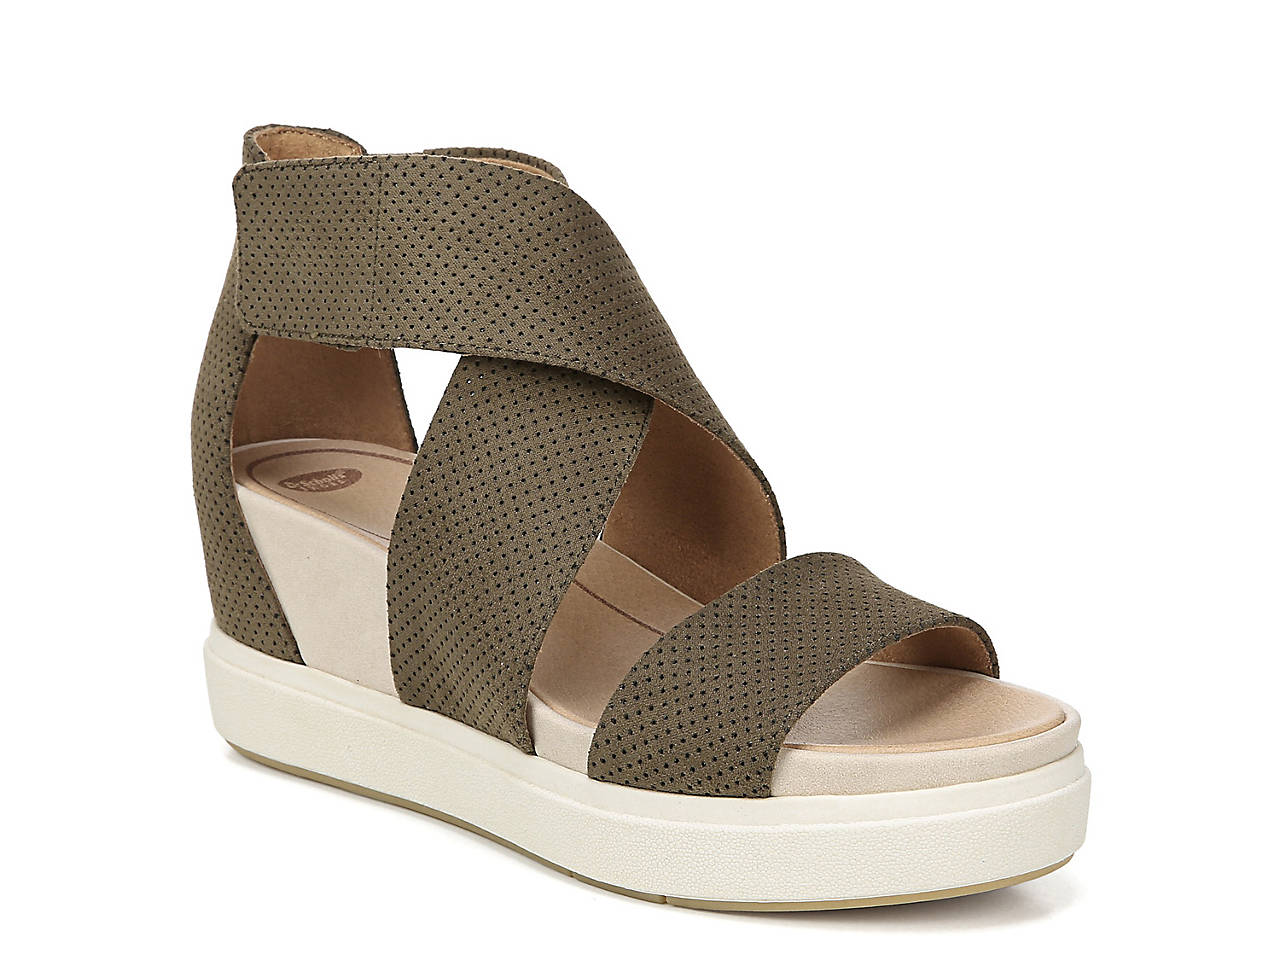 6f55a5b228ed Dr. Scholl s Scheena Wedge Sandal Women s Shoes